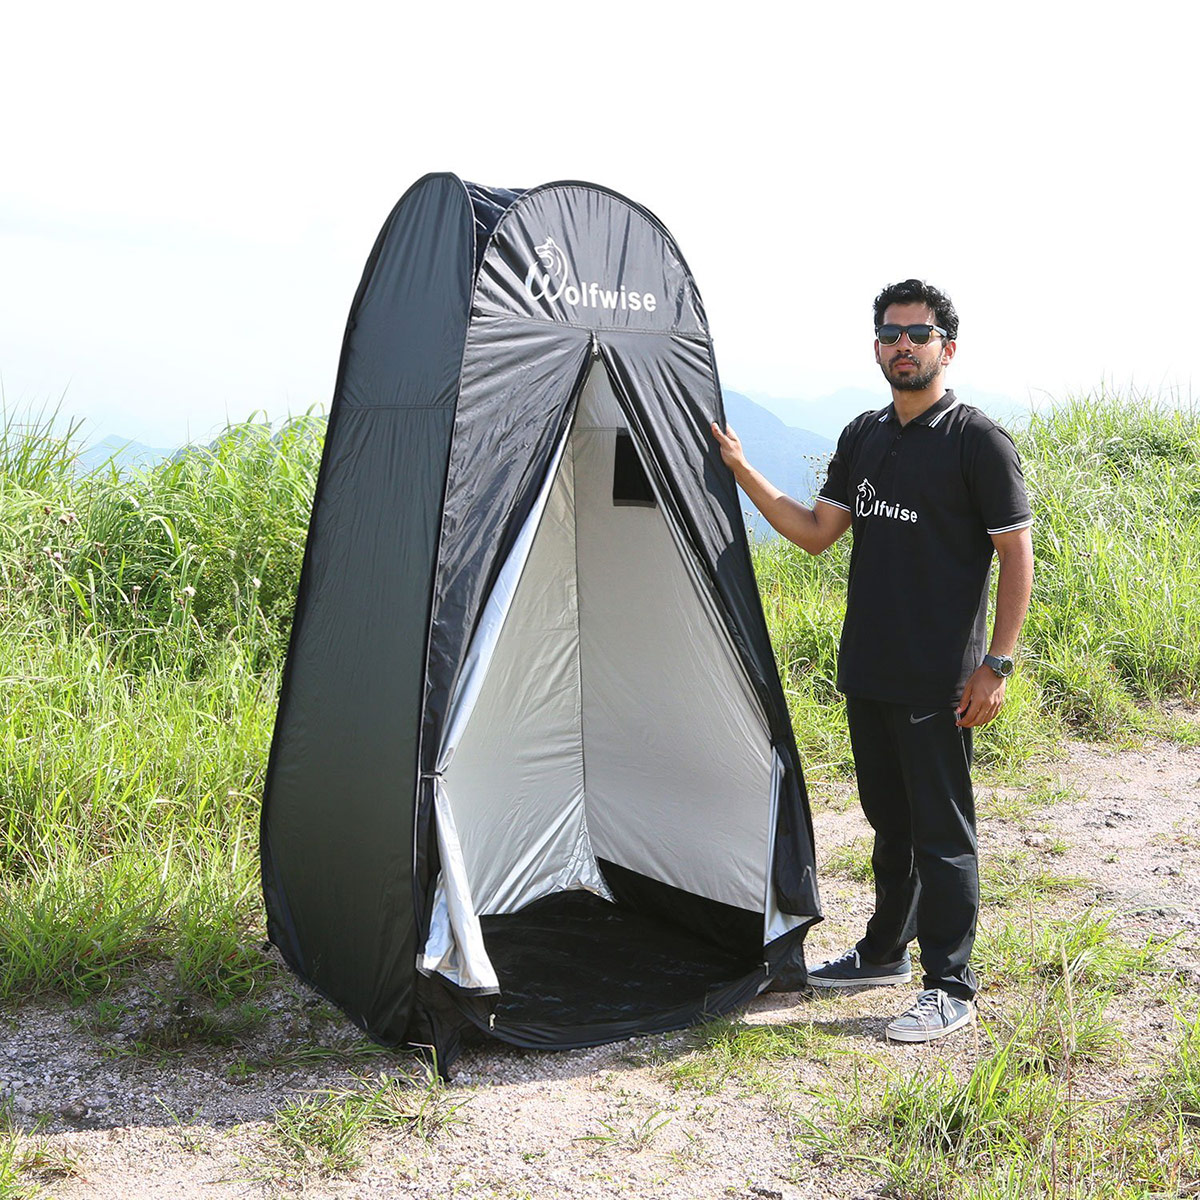 5 Pop Up Changing Tent Reviews For Privacy As A Toilet Or